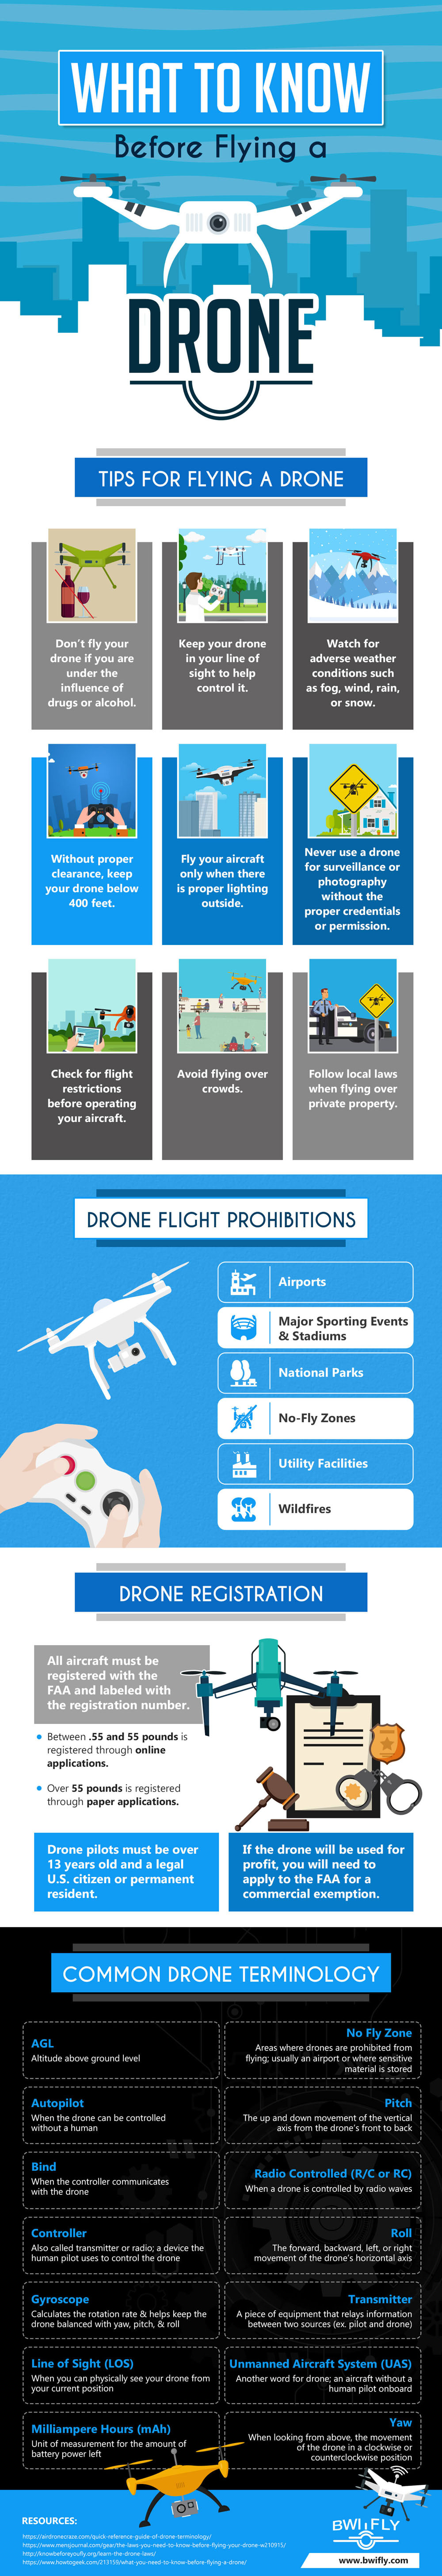 What to Know Before Flying a Drone